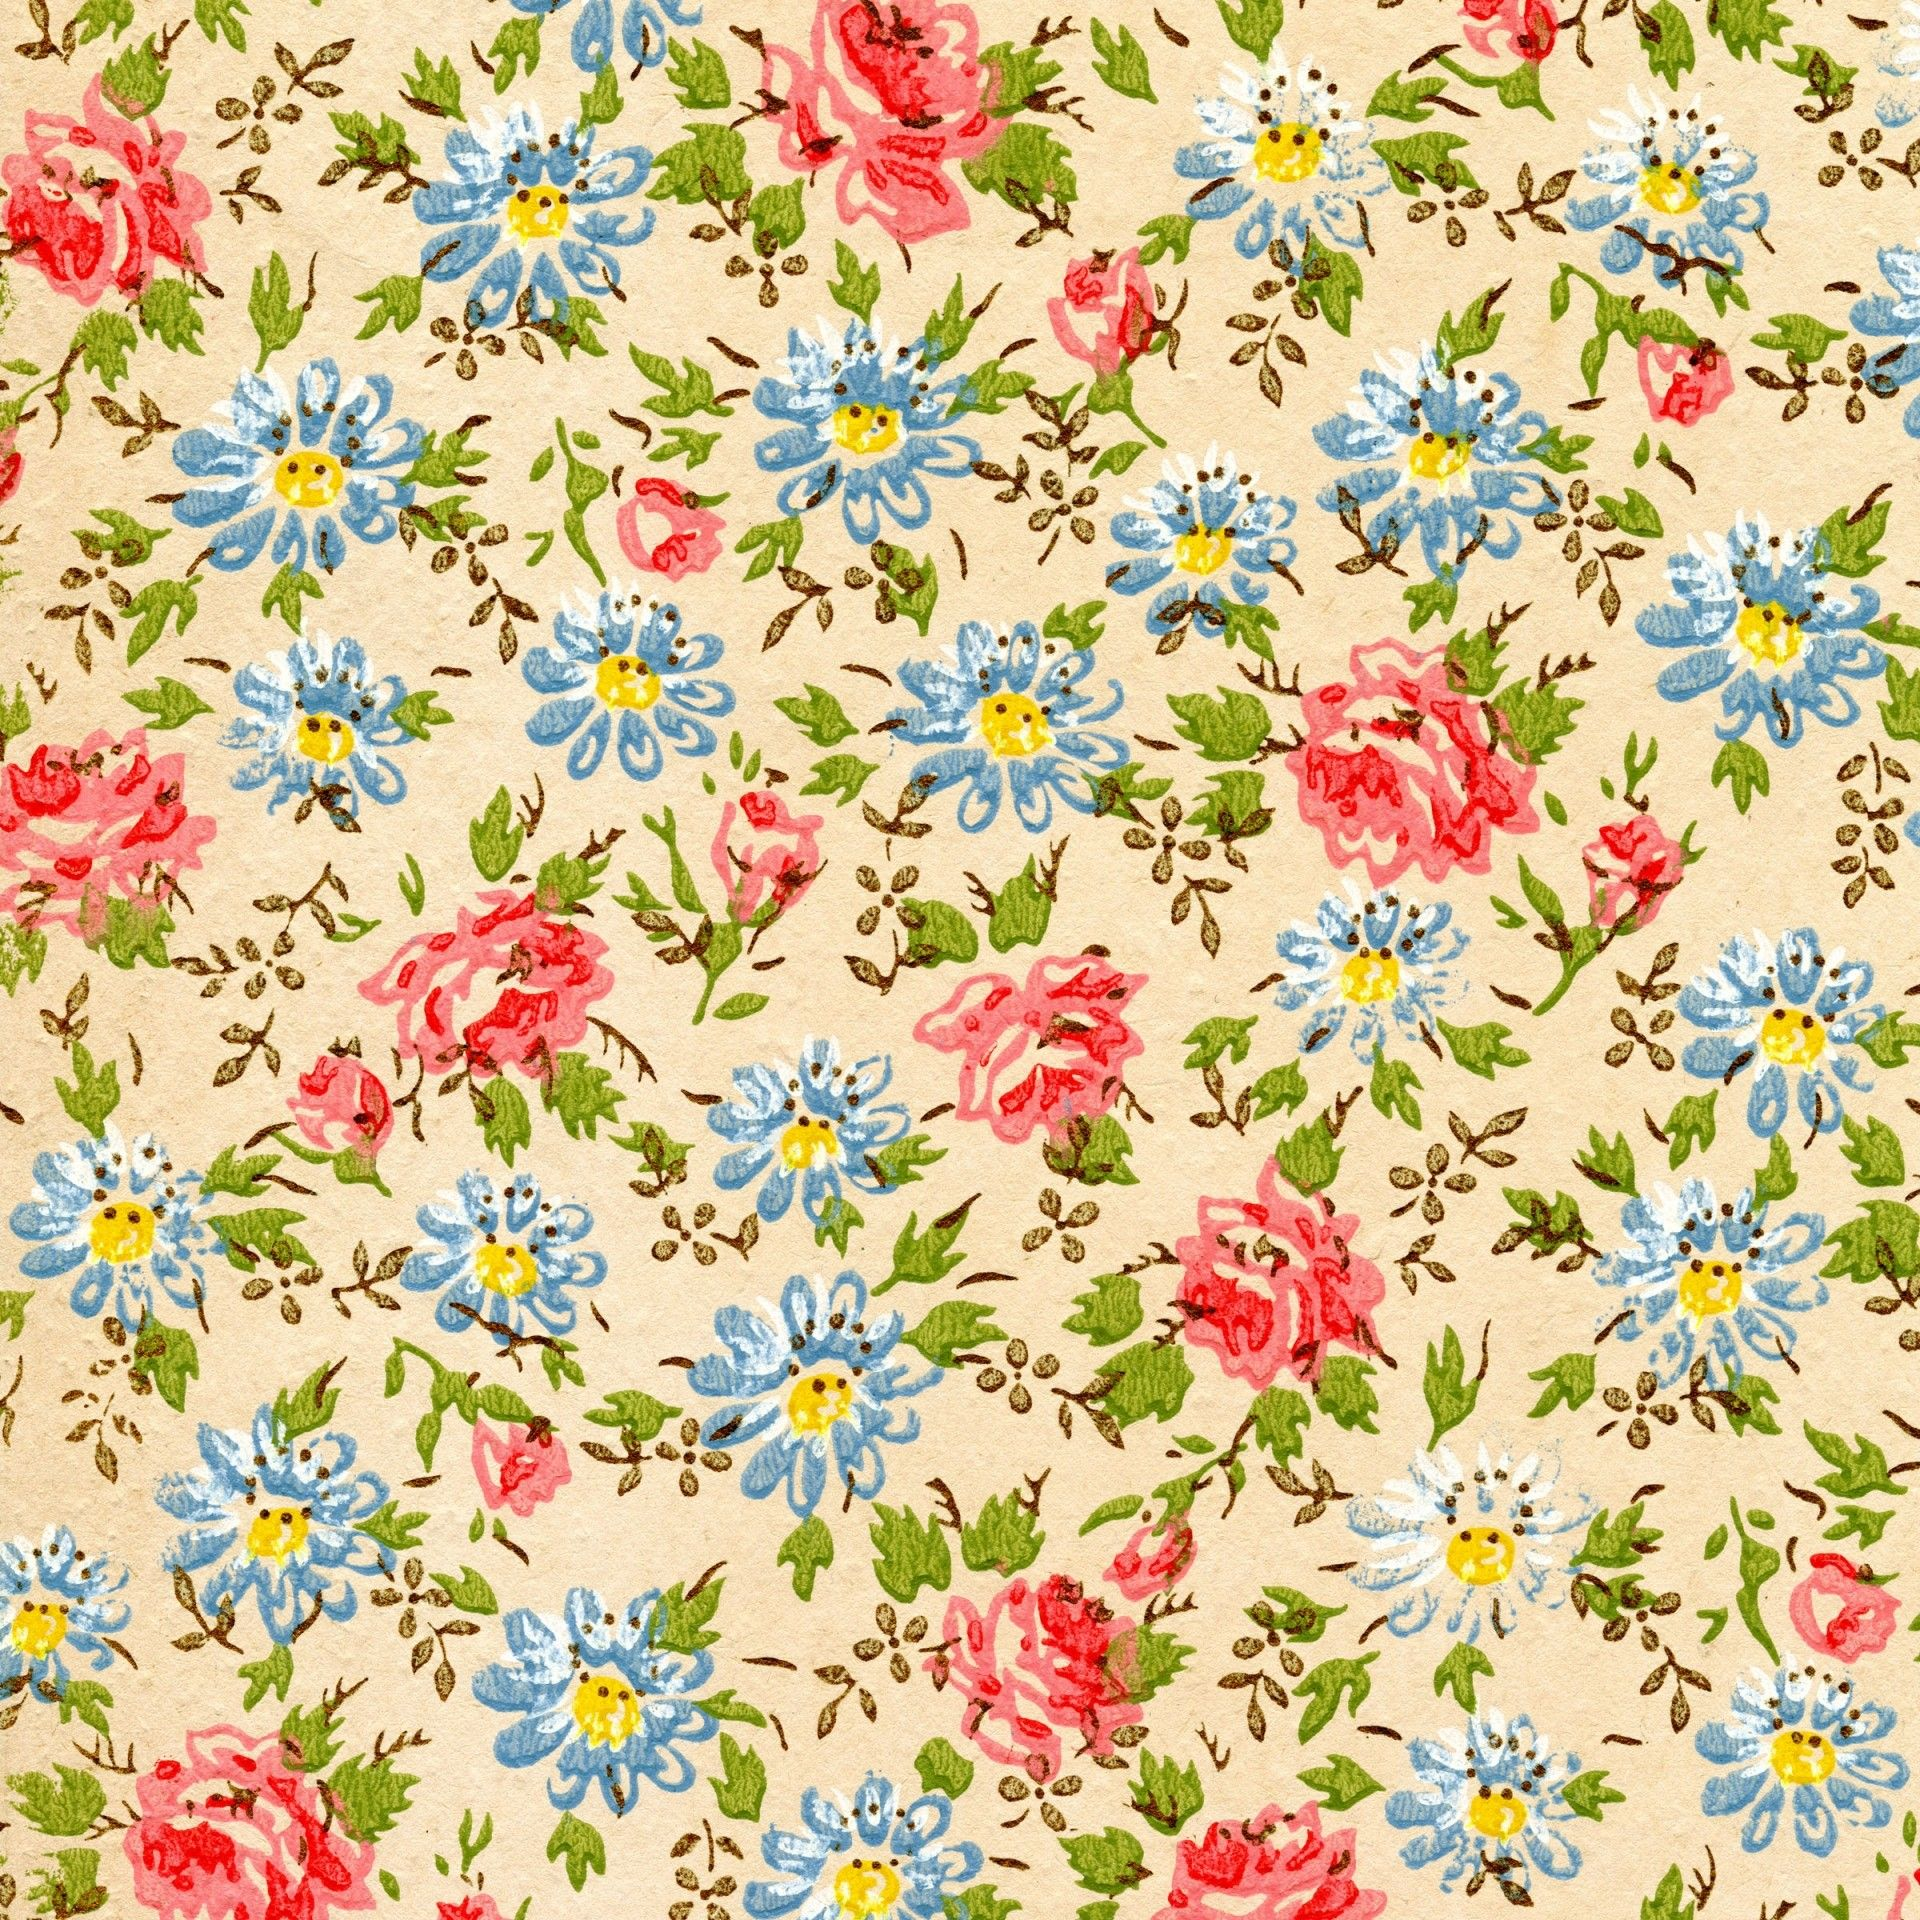 Vintage floral iphone wallpaper tumblr - You Can Make Vintage Floral Iphone Wallpaper Tumblr For Your Desktop Background Tablet Android